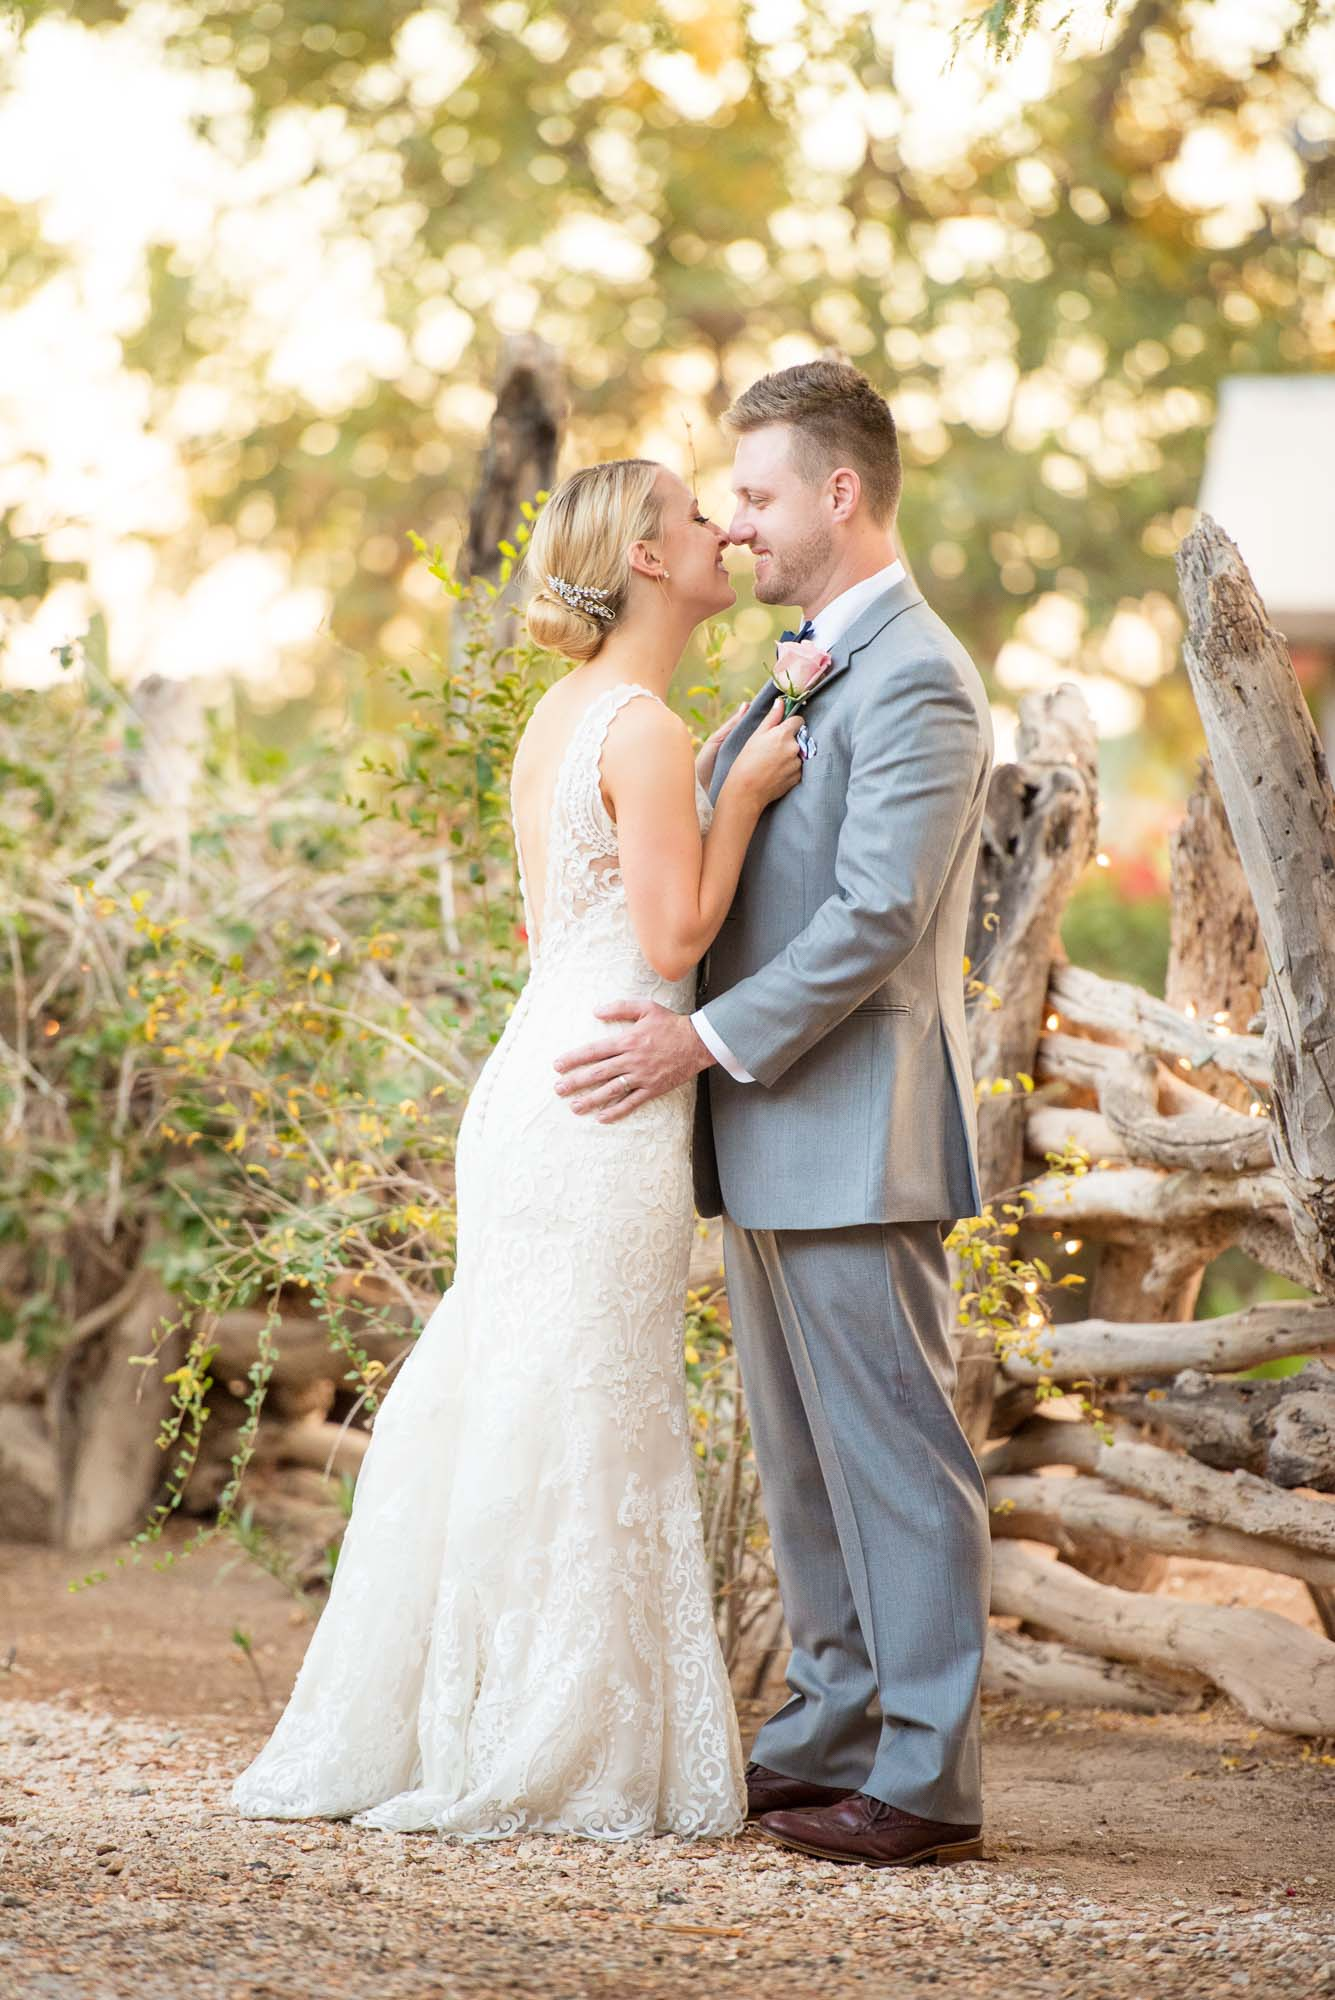 Romantic Bride And Groom Country Themed Wedding